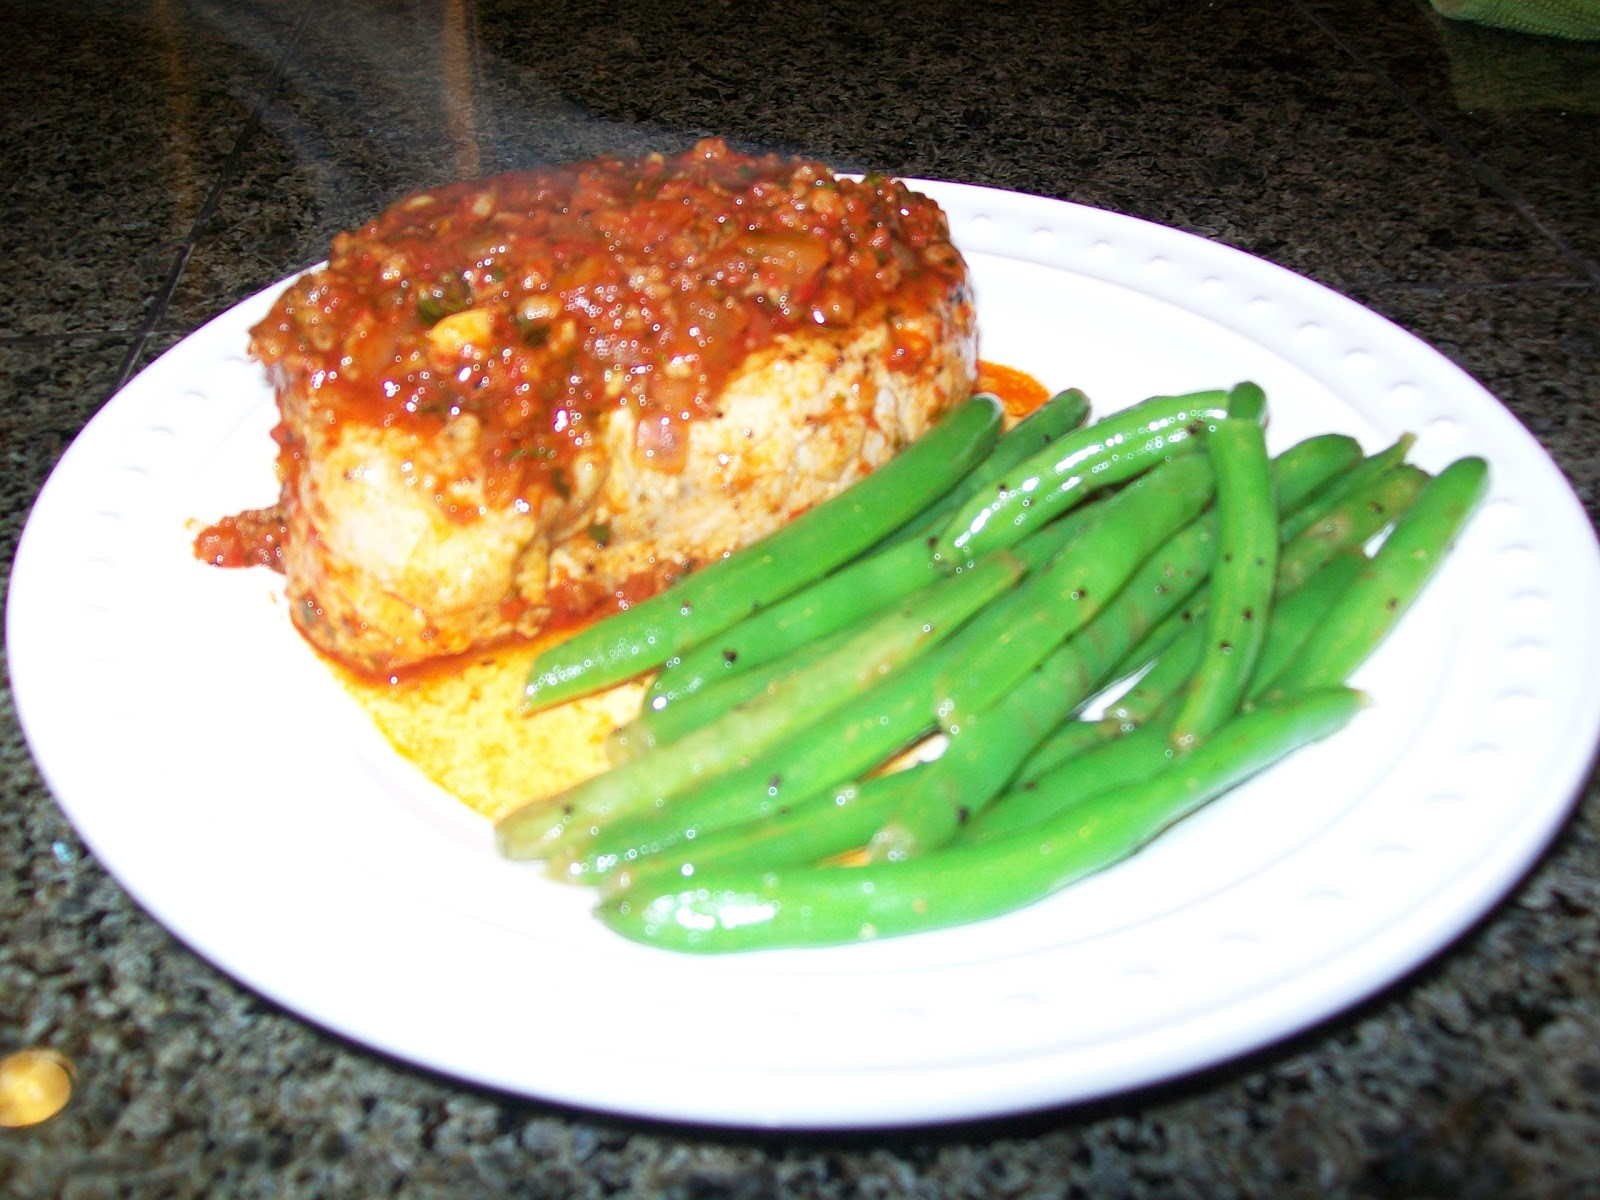 ... Pork Chops with Chorizo and Roasted Red Pepper Sauce and Green Beans